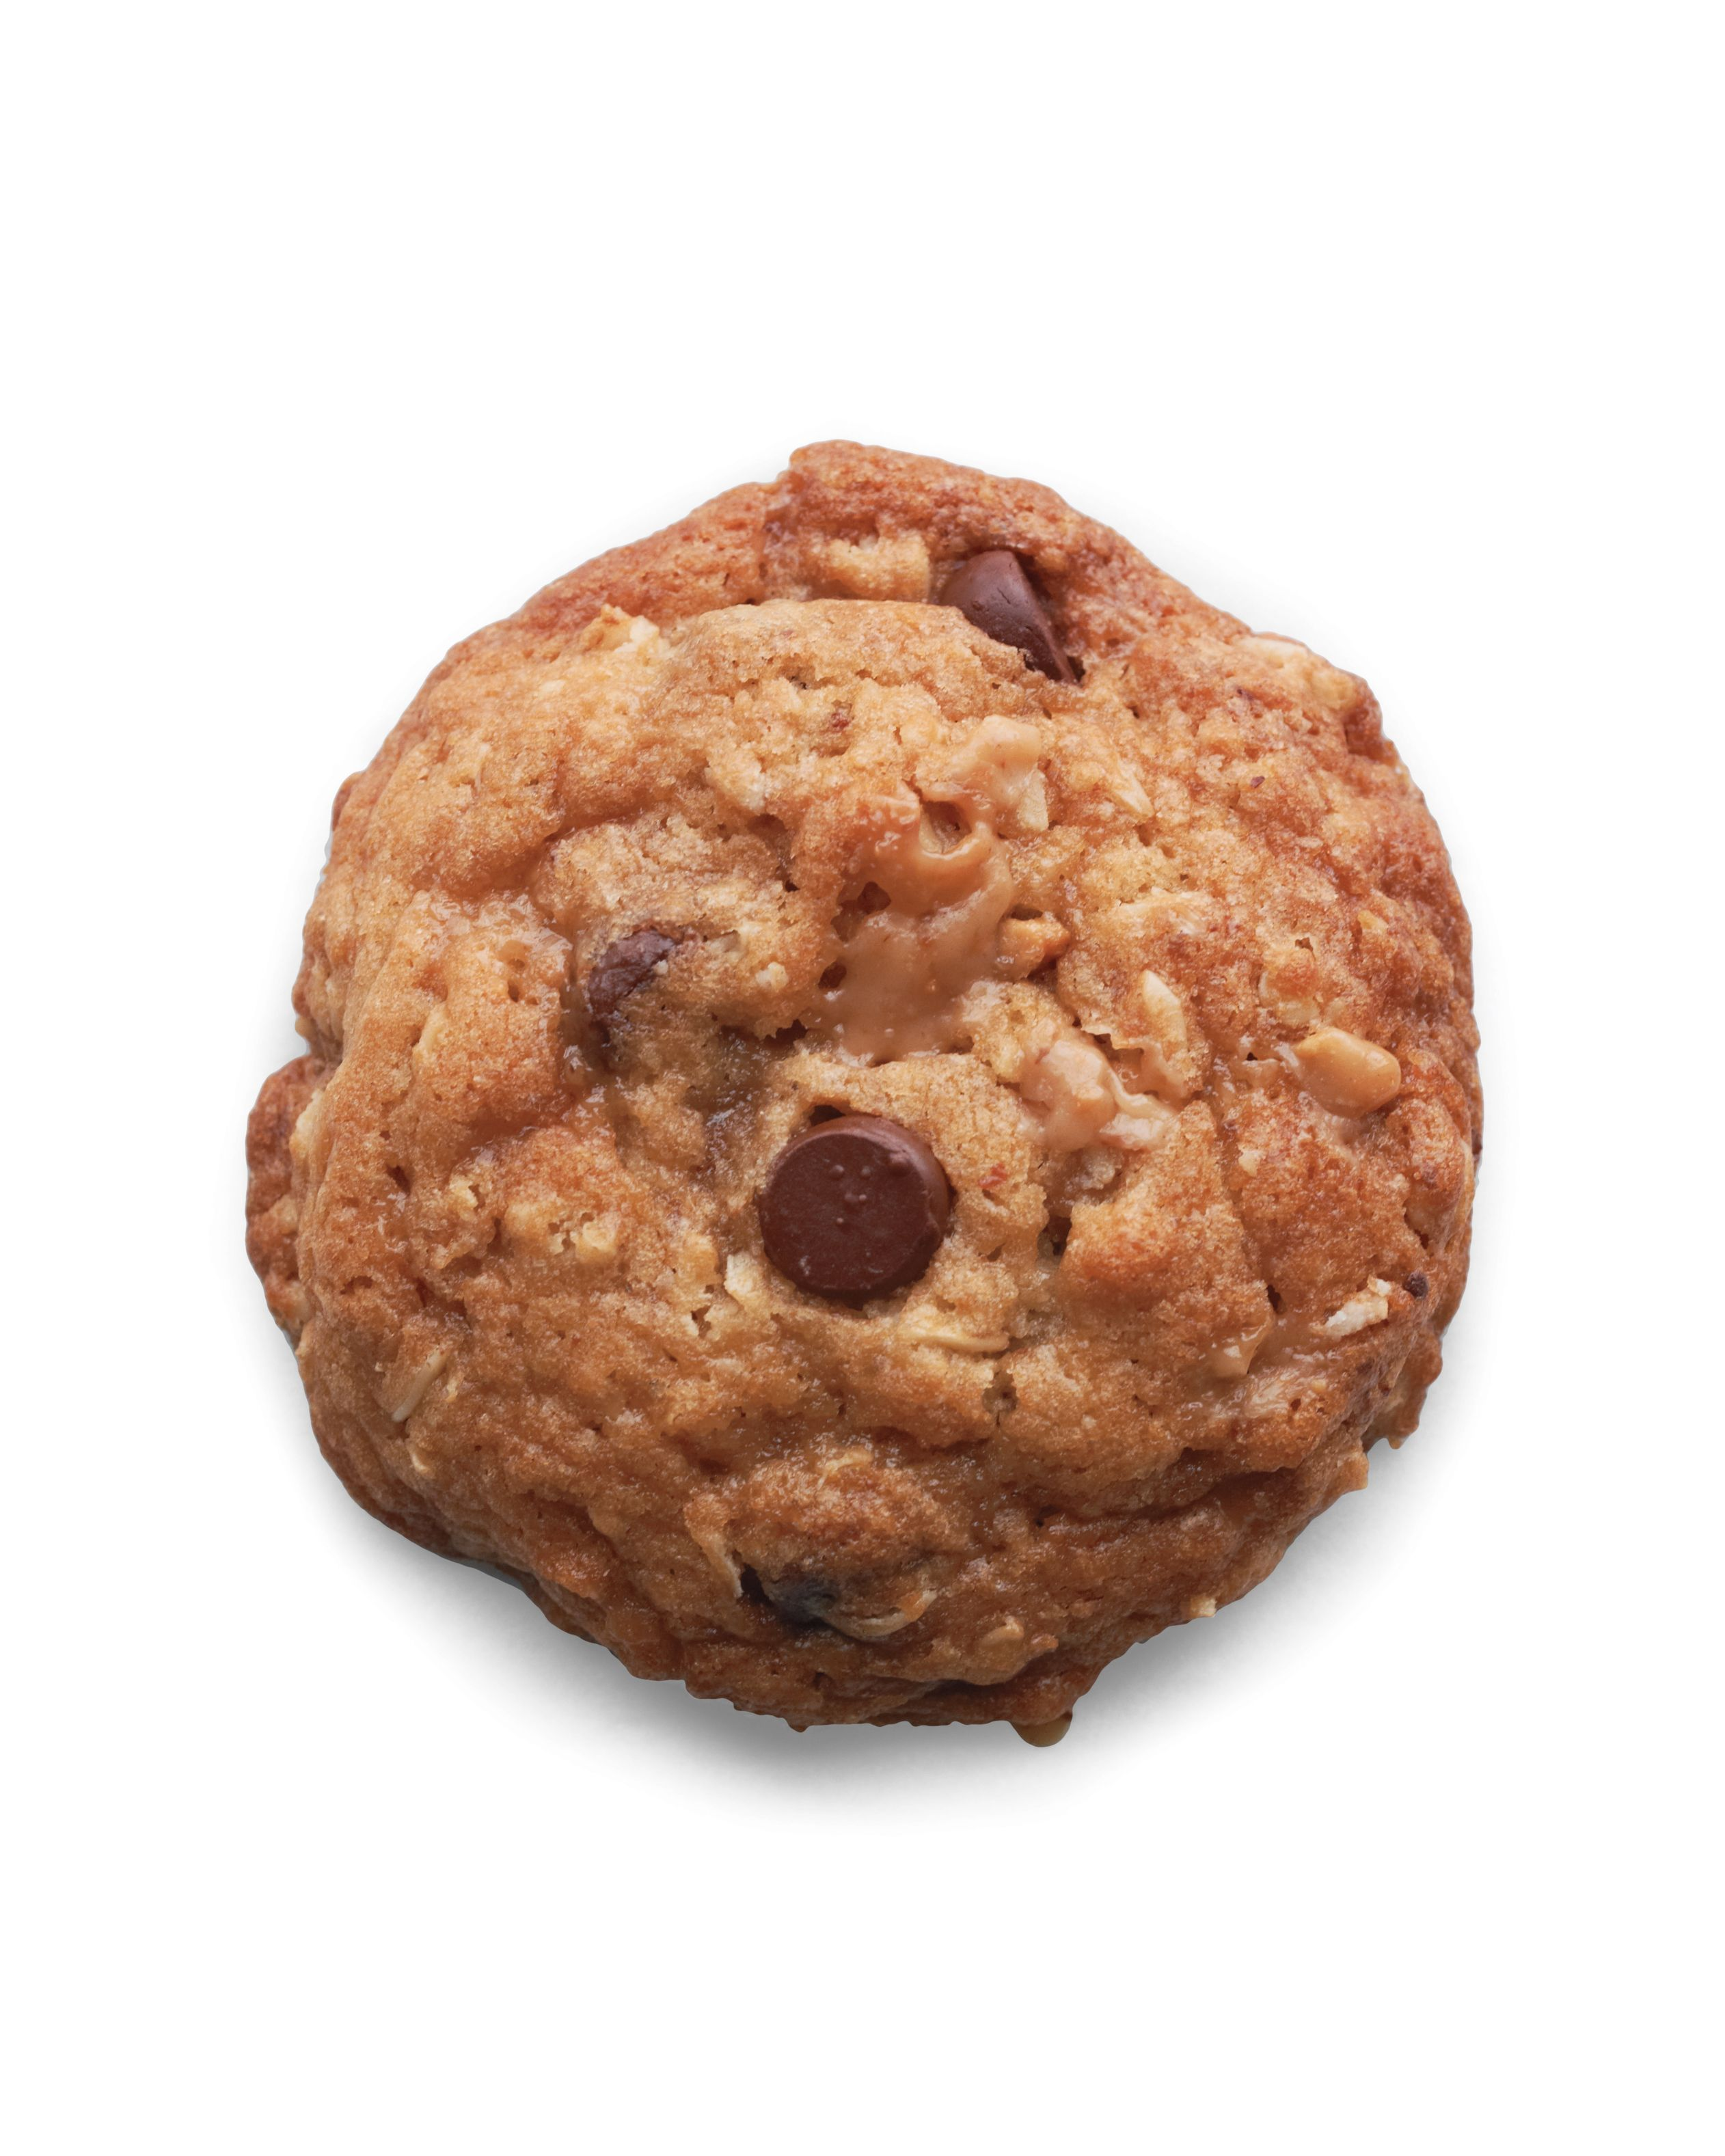 Chocolate-Chip Cookie Recipes: From the